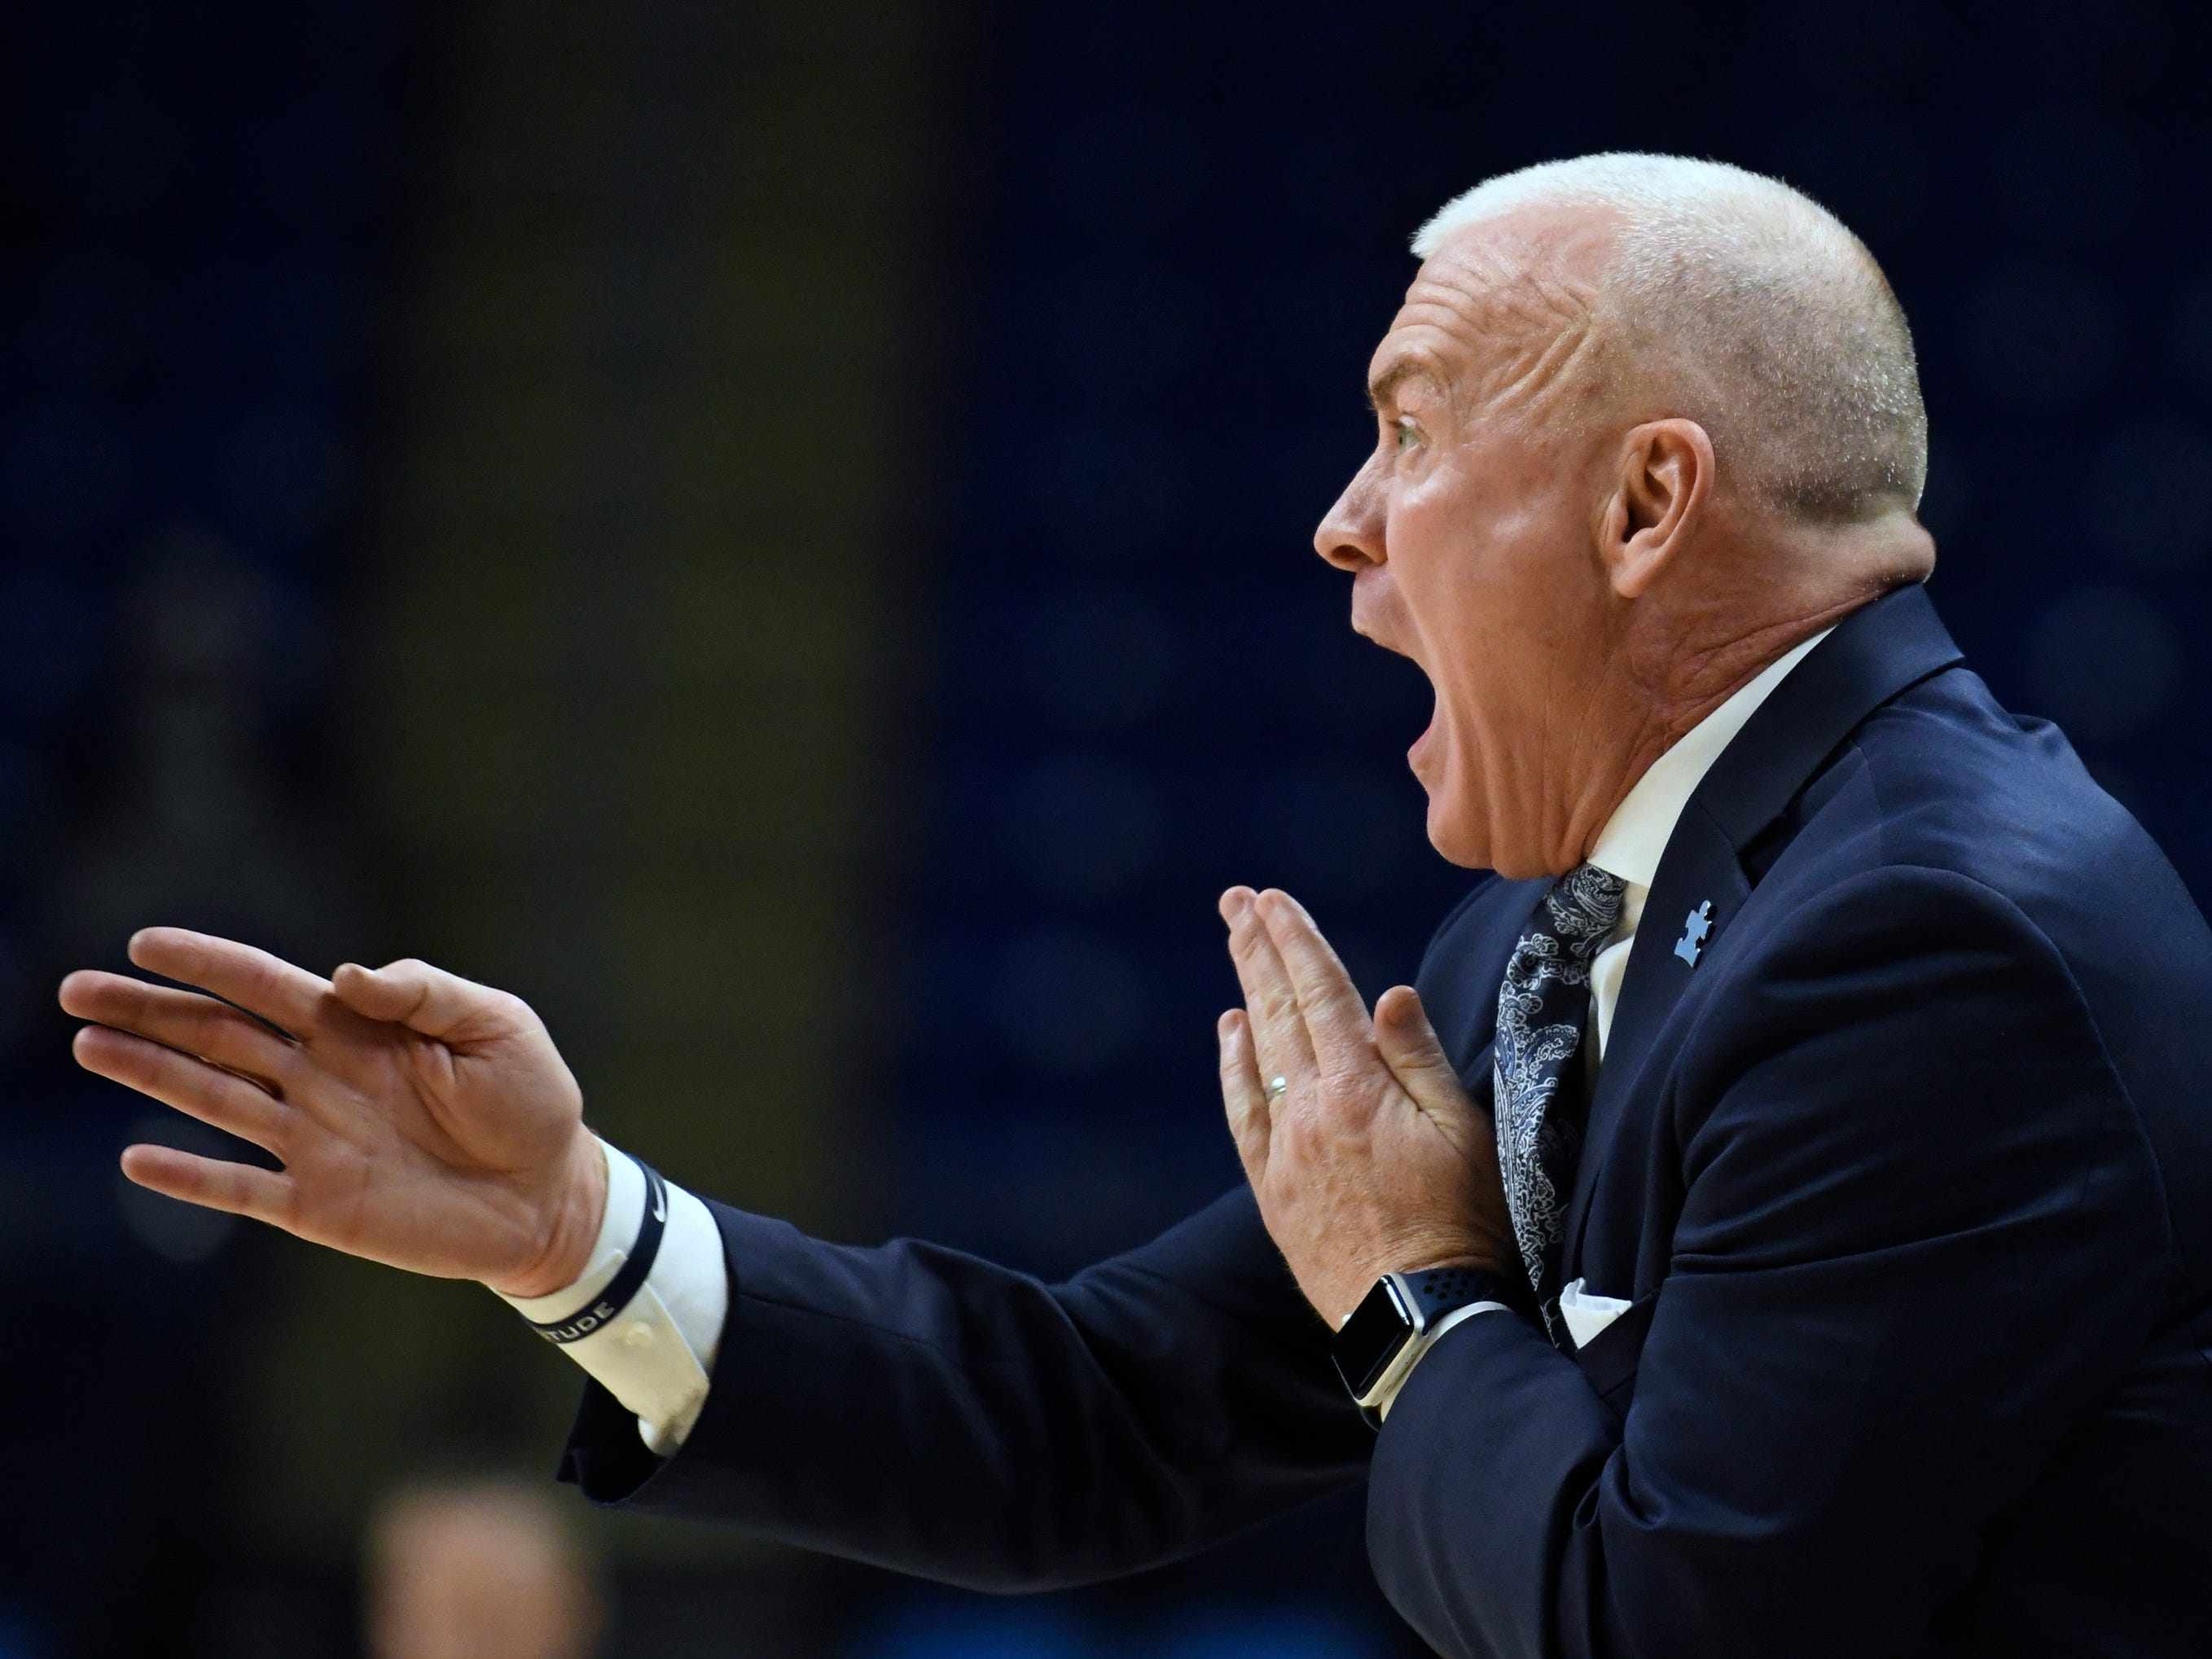 Penn State head coach Patrick Chambers instructs his team during the second half.